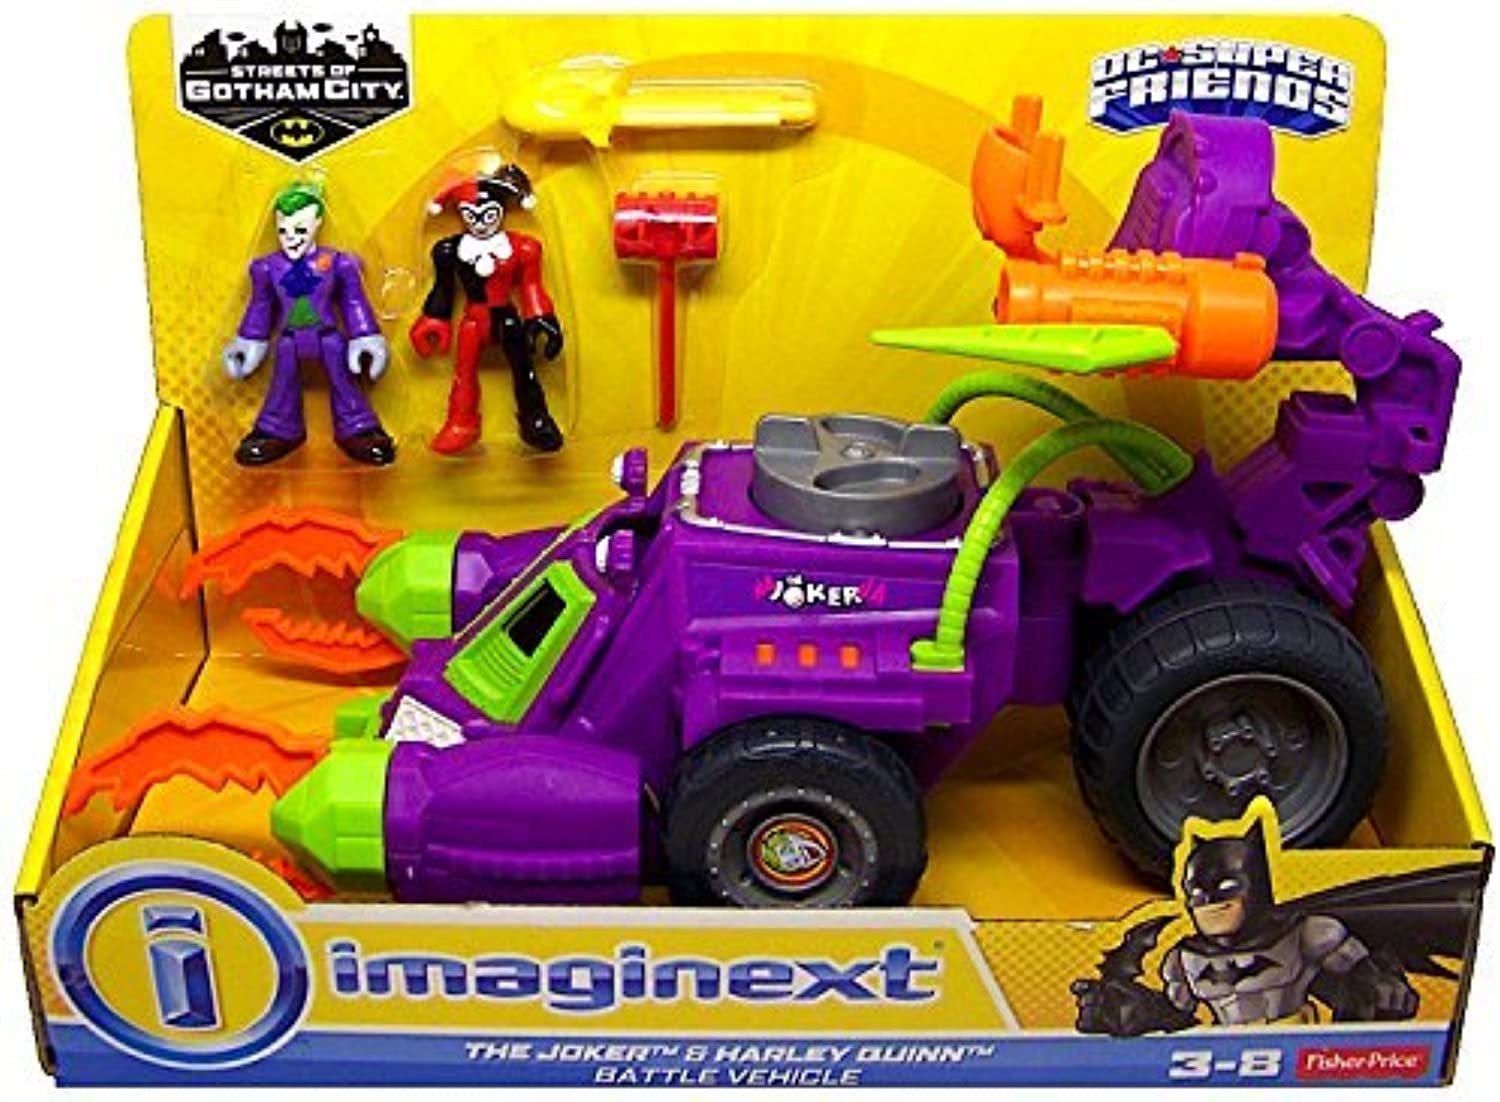 autentico en linea The Joker & Harley Quinn Battle Battle Battle Vehicle DC súper Friends Streets of Gotham City Imaginext by DC Comics  producto de calidad